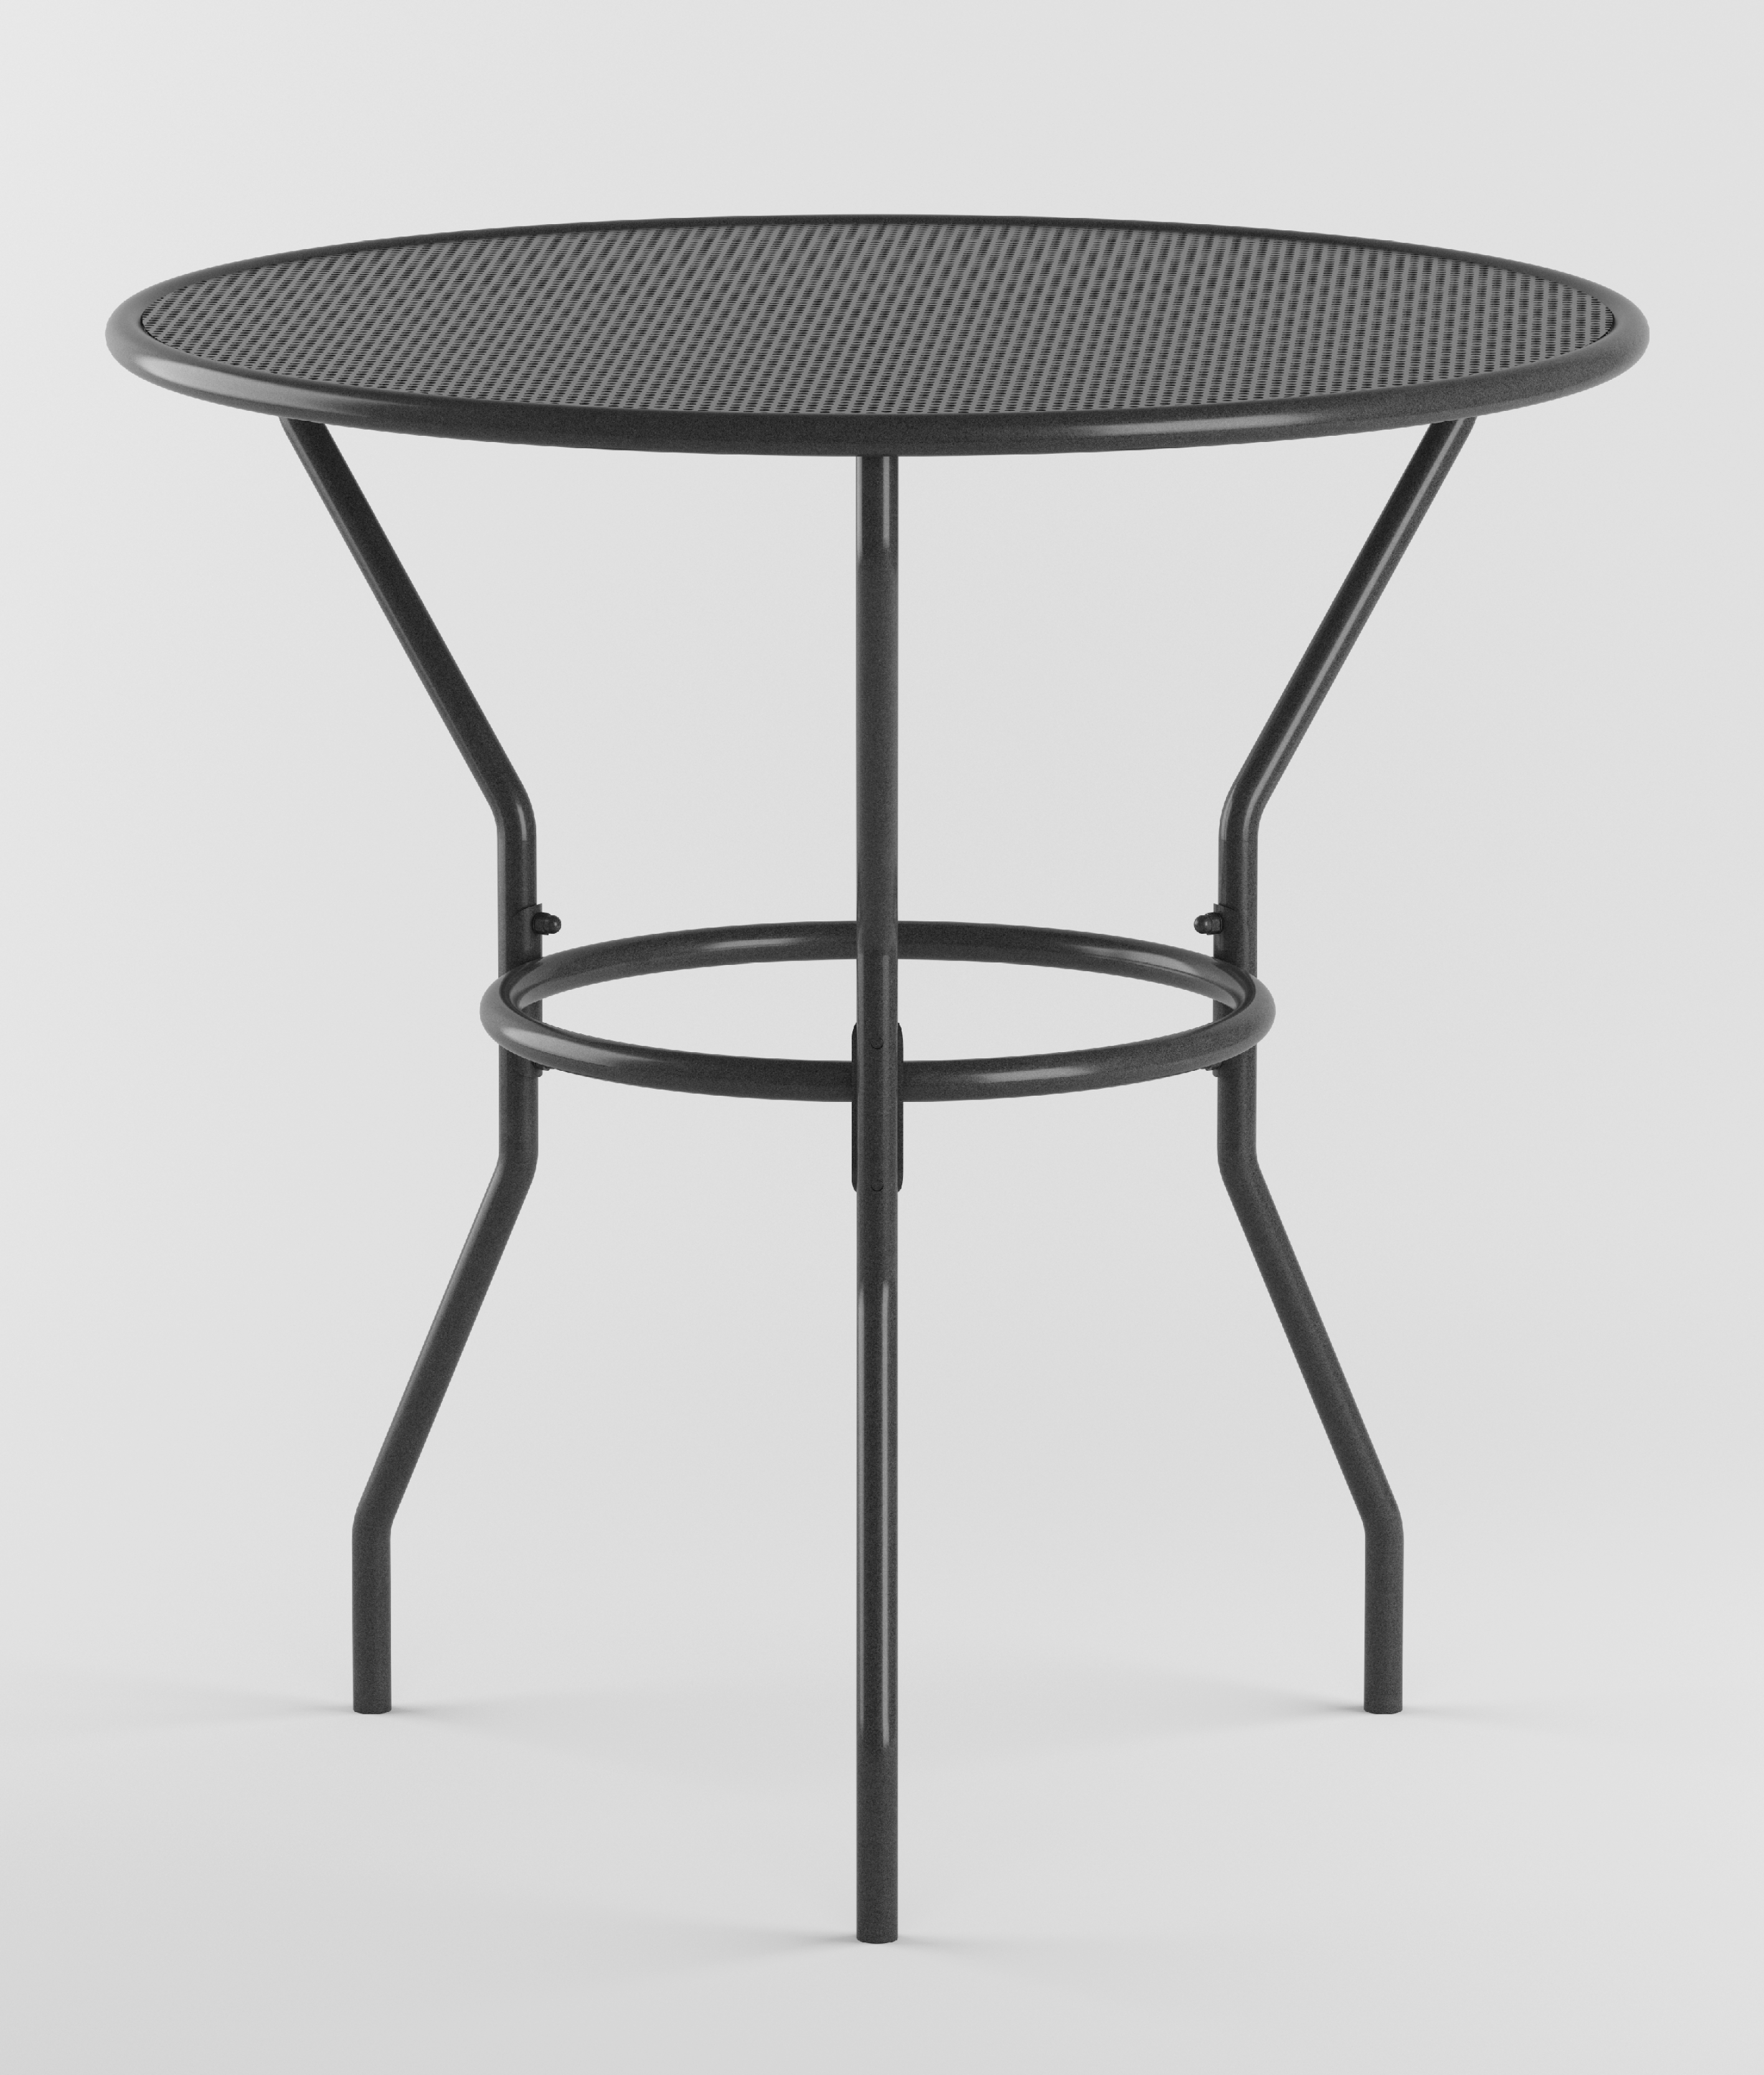 Opla Outdoor Round Table outdoor furniture.png